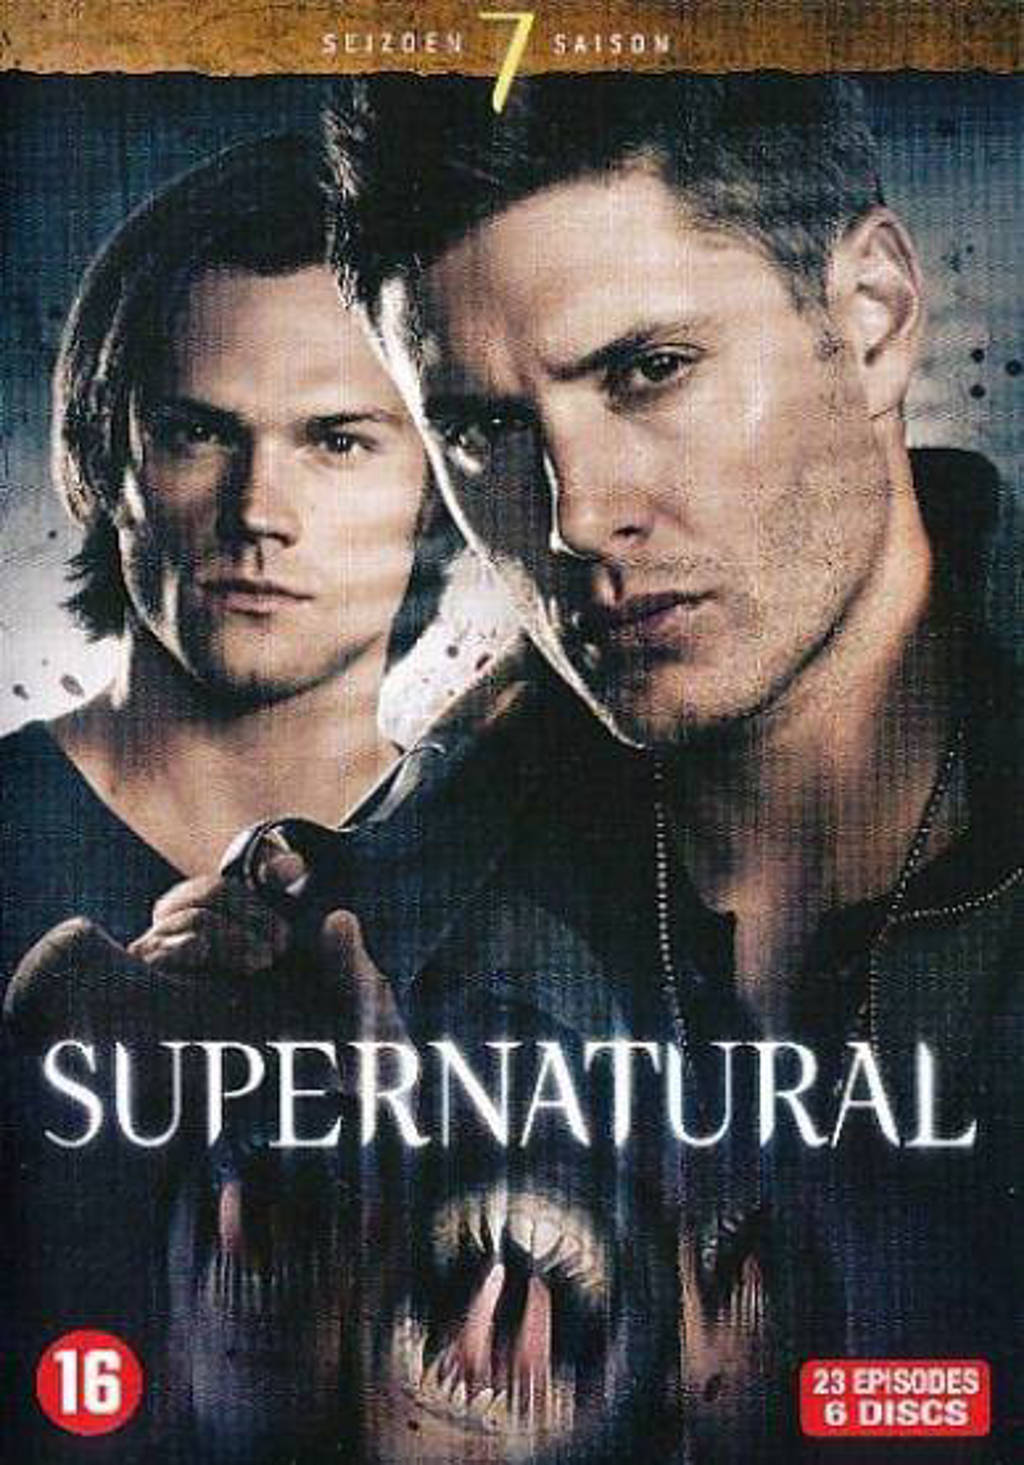 Supernatural - Seizoen 7 (DVD)